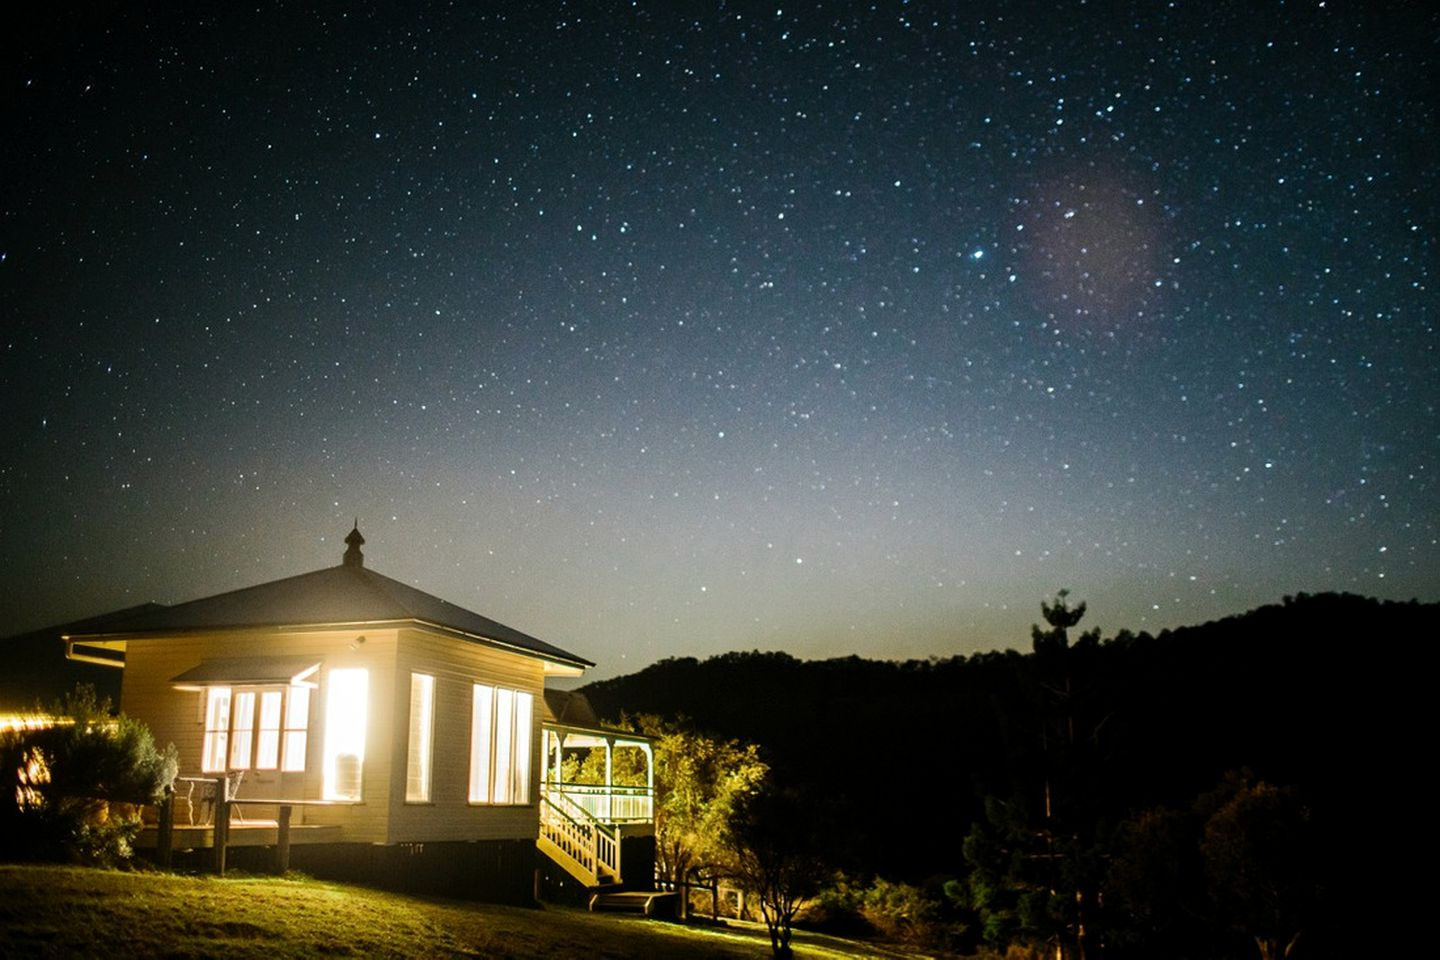 Starry sky above Lost World Valley accommodation